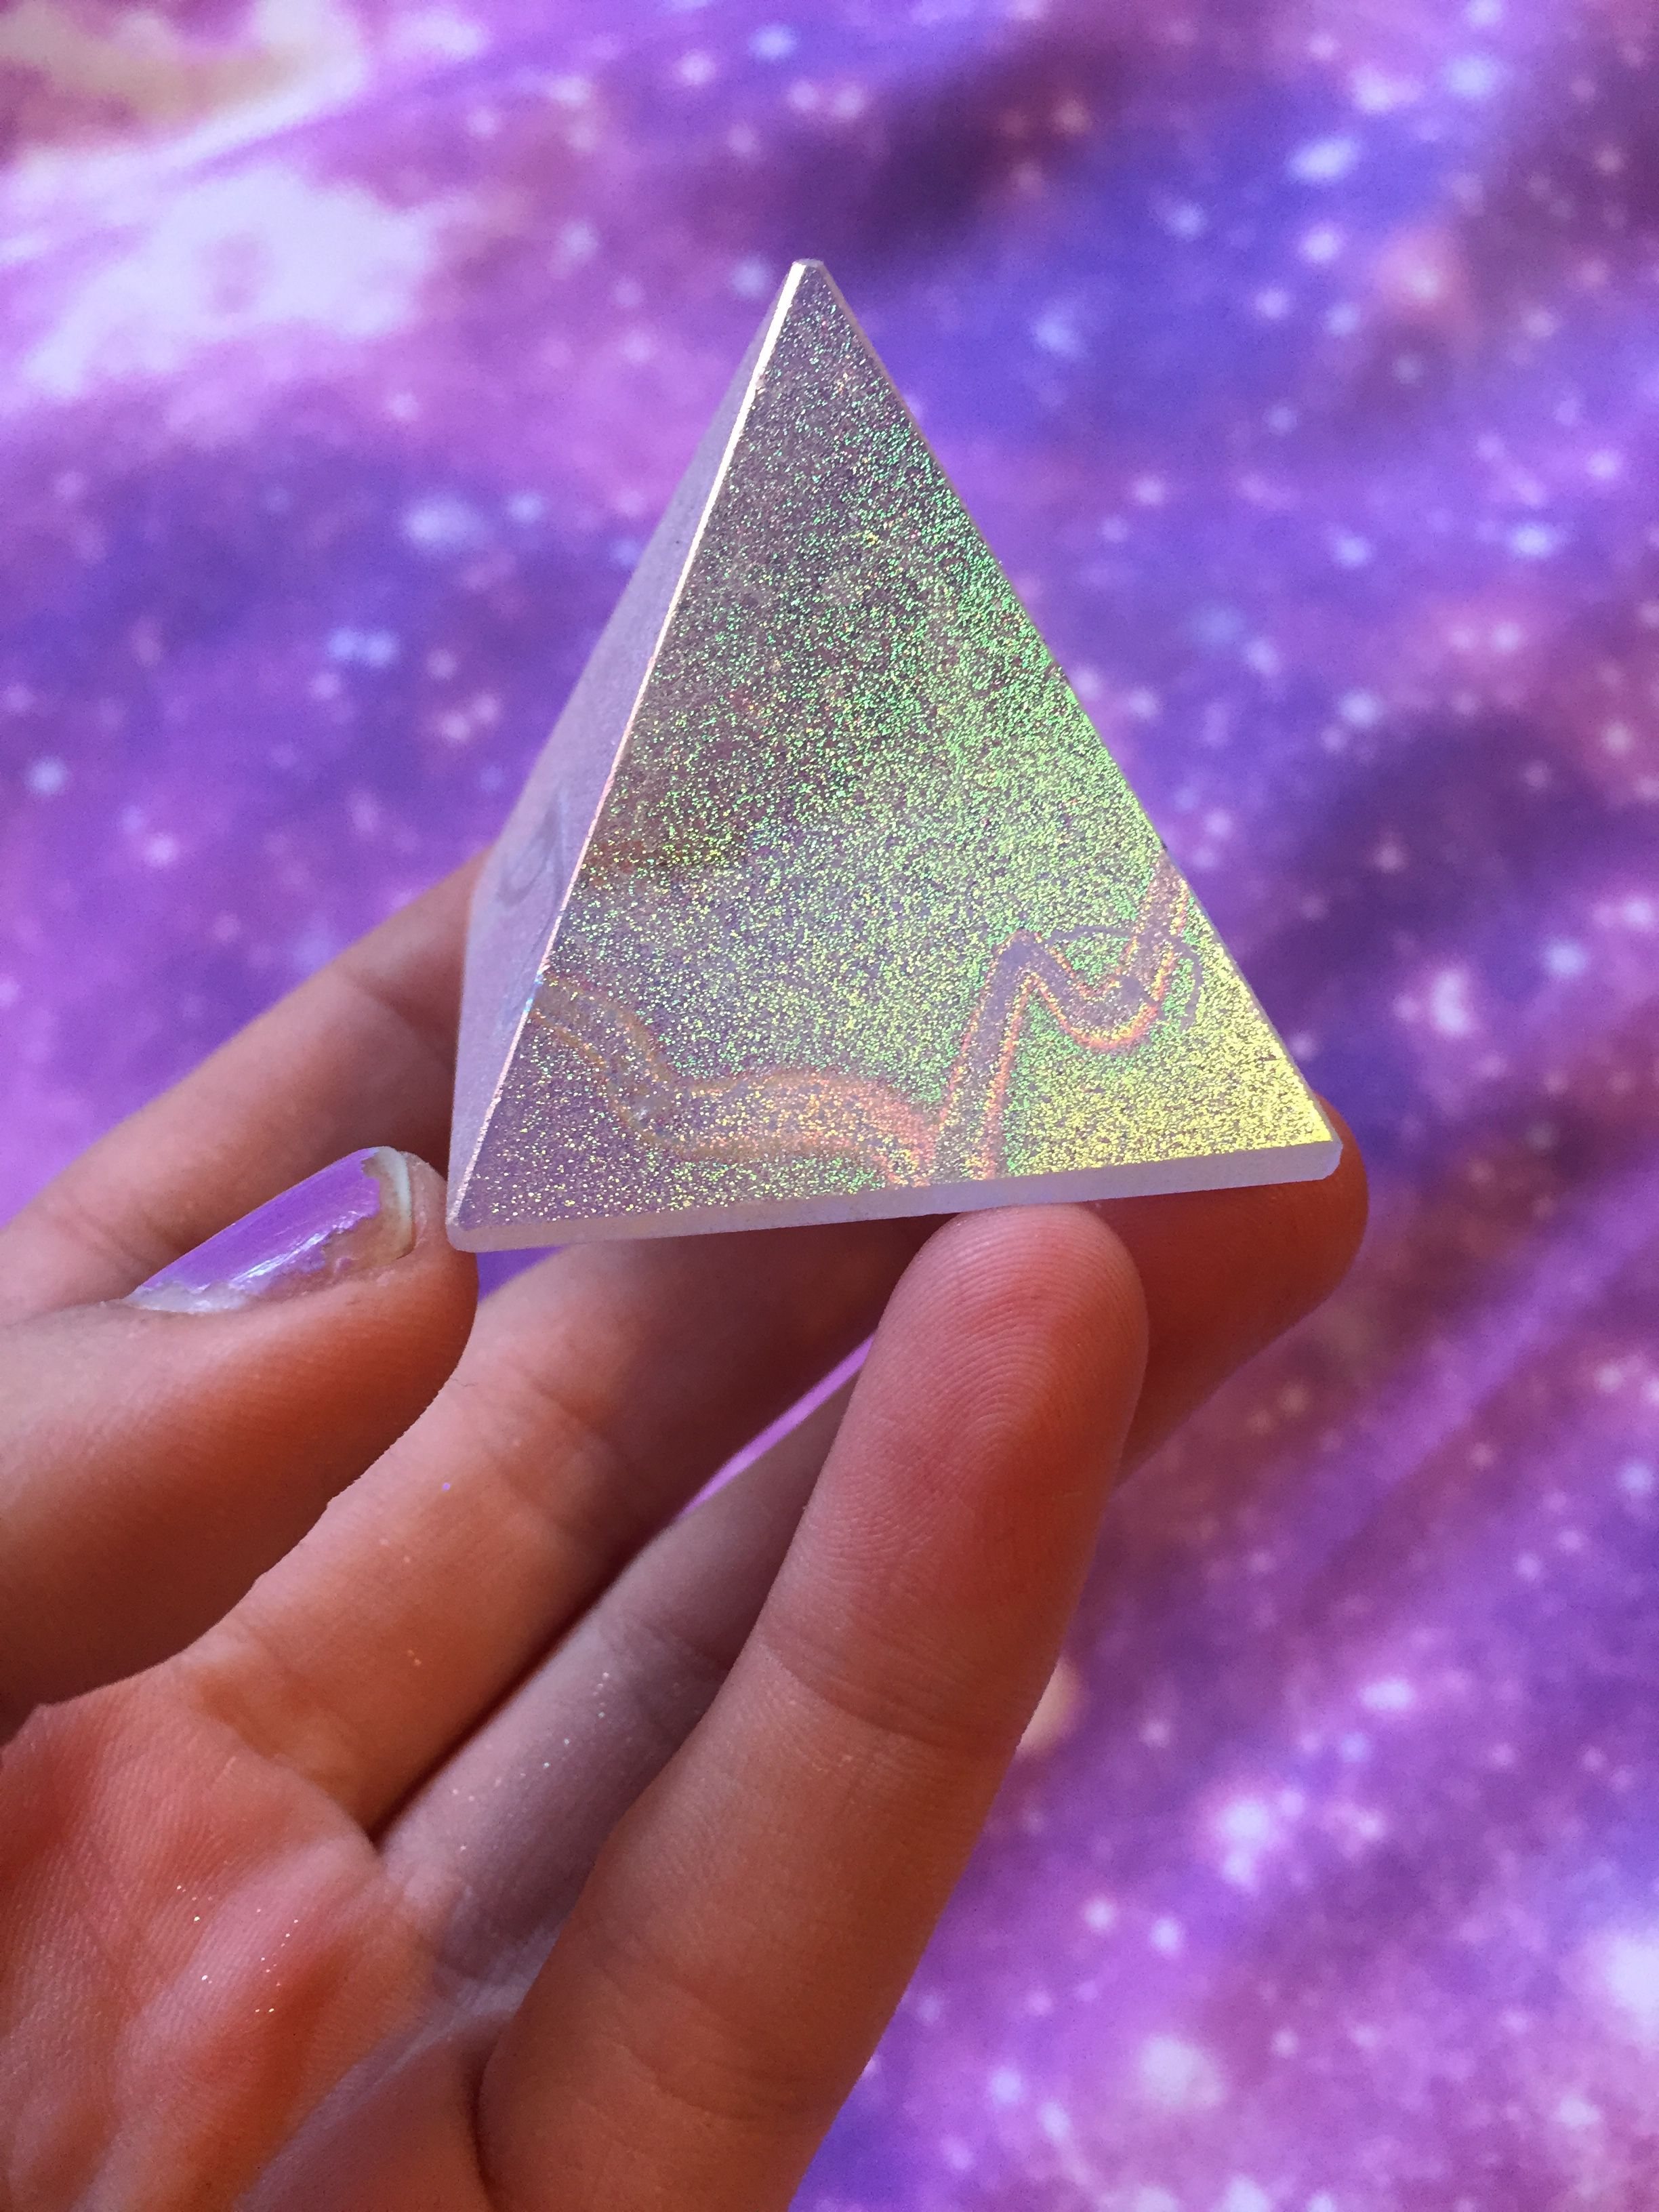 Sparkle Aura Pyramid altar display leaves reminense of faerie dust in your hands